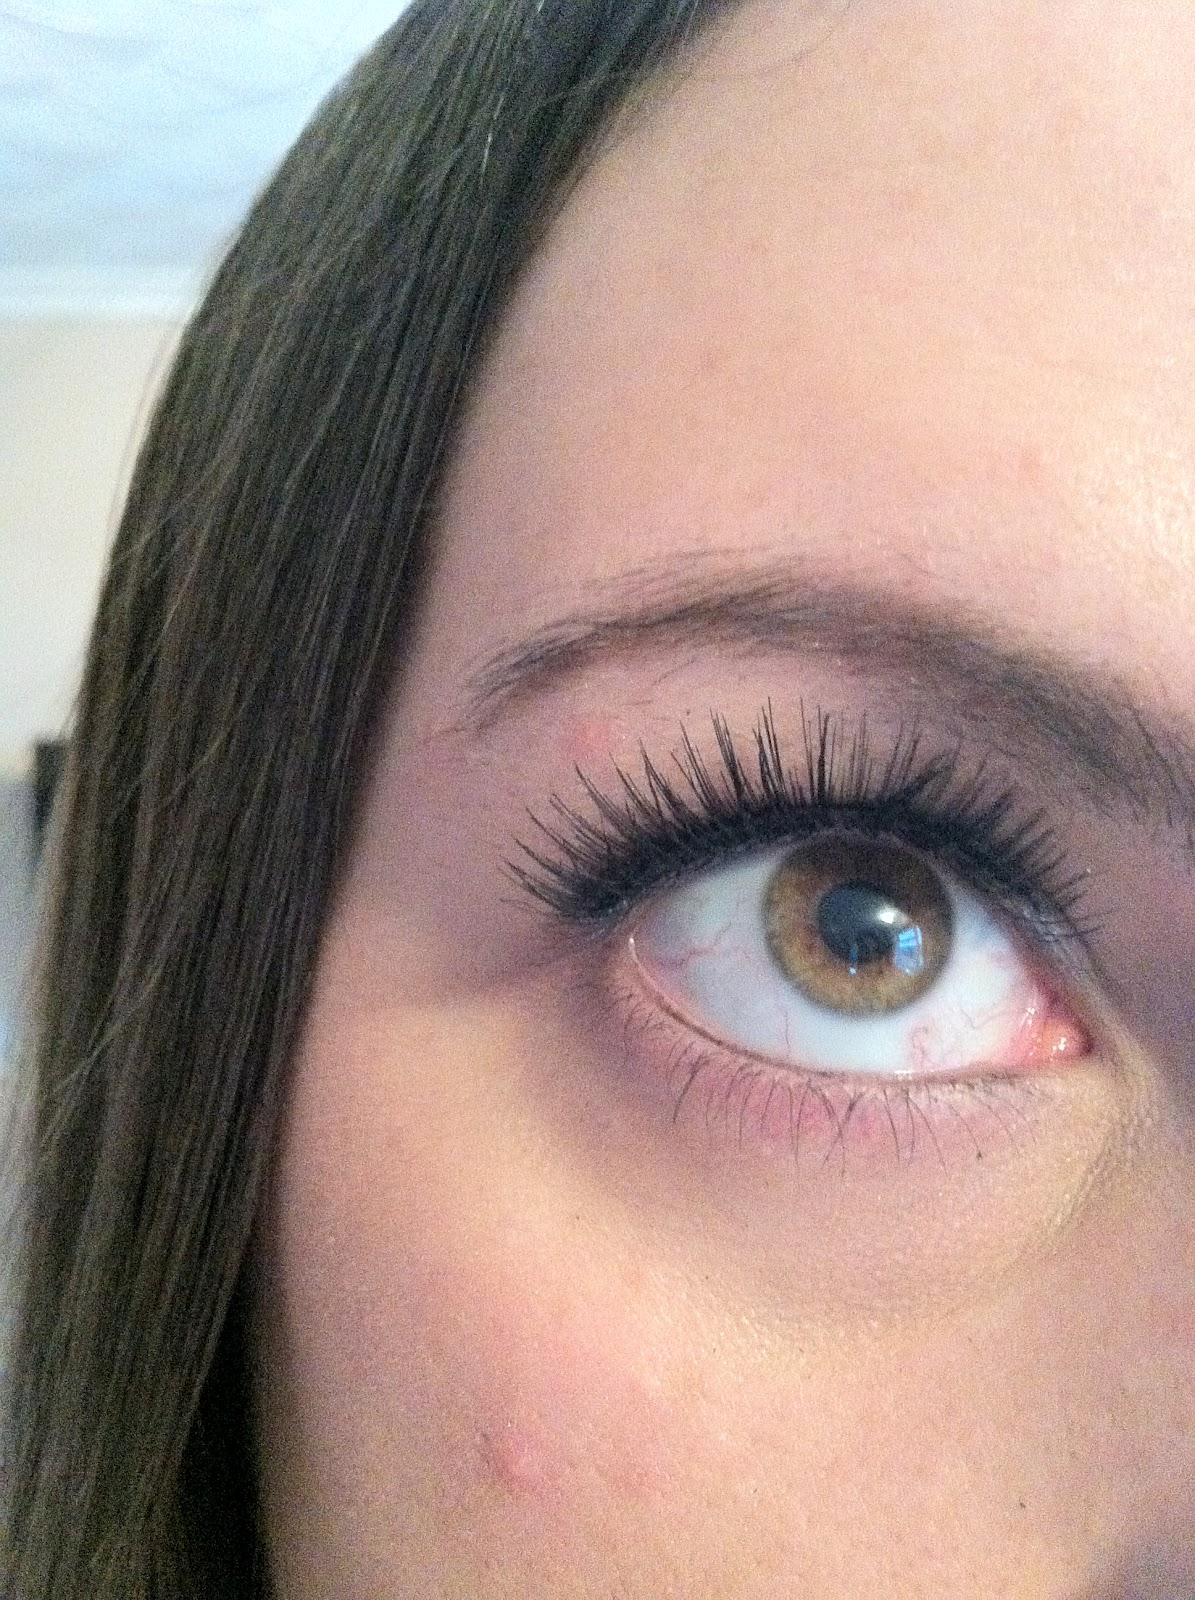 fe58c2fd65c The last set I tried are these #131 Lashes, part of the Ardell Fashion  Range.